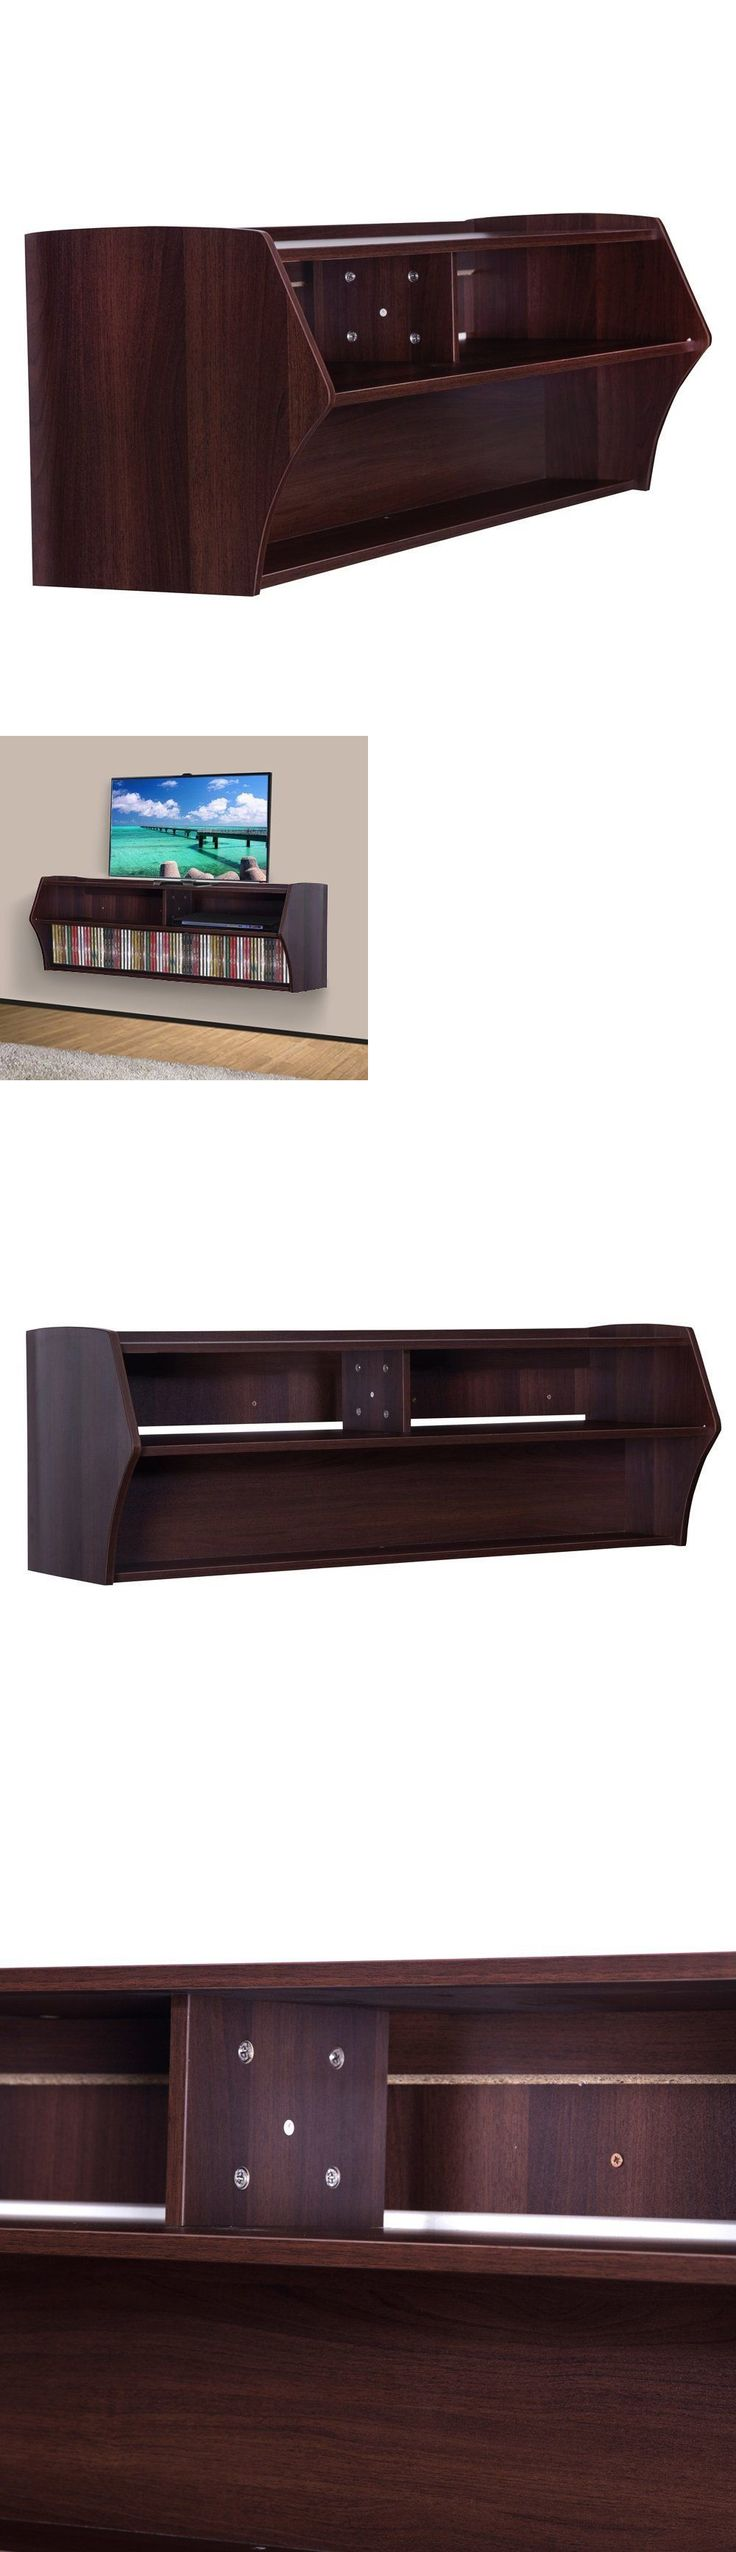 Entertainment Units TV Stands 20488: Floating Console Stand Entertainment Tv Media Center Cd Dvd Storage Wall Mounted -> BUY IT NOW ONLY: $126.24 on eBay!